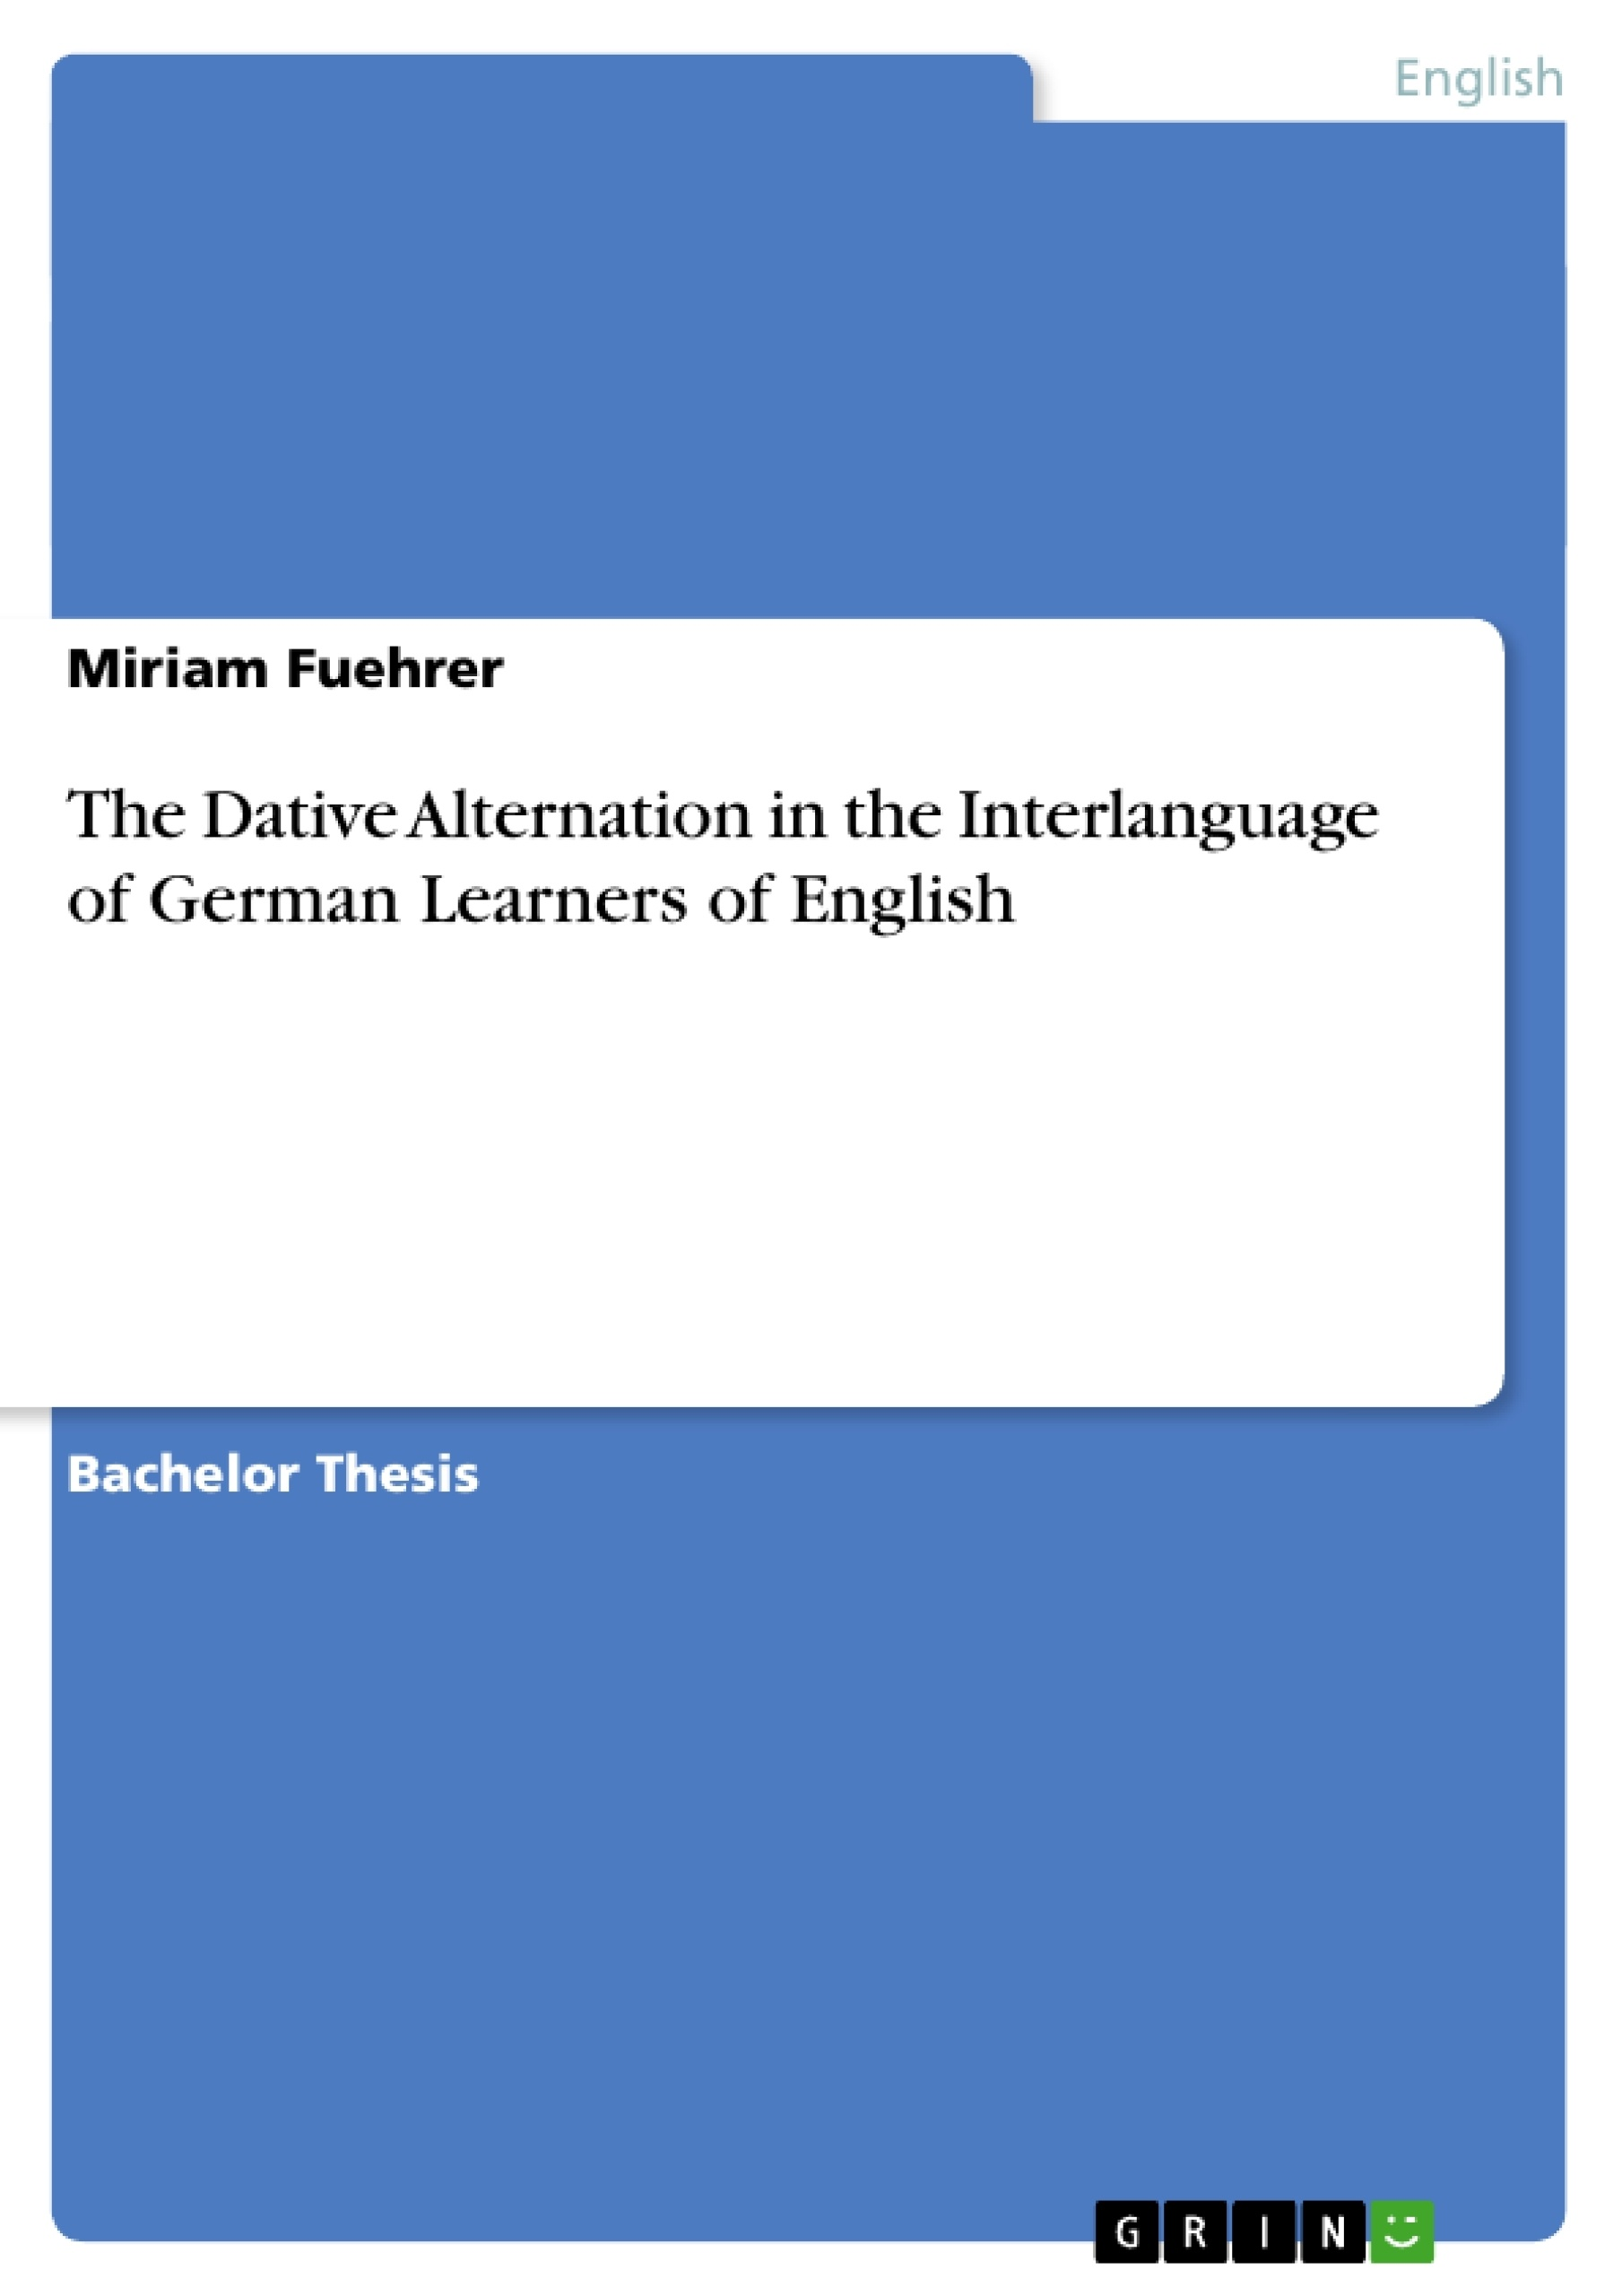 Title: The Dative Alternation in the Interlanguage of German Learners of English